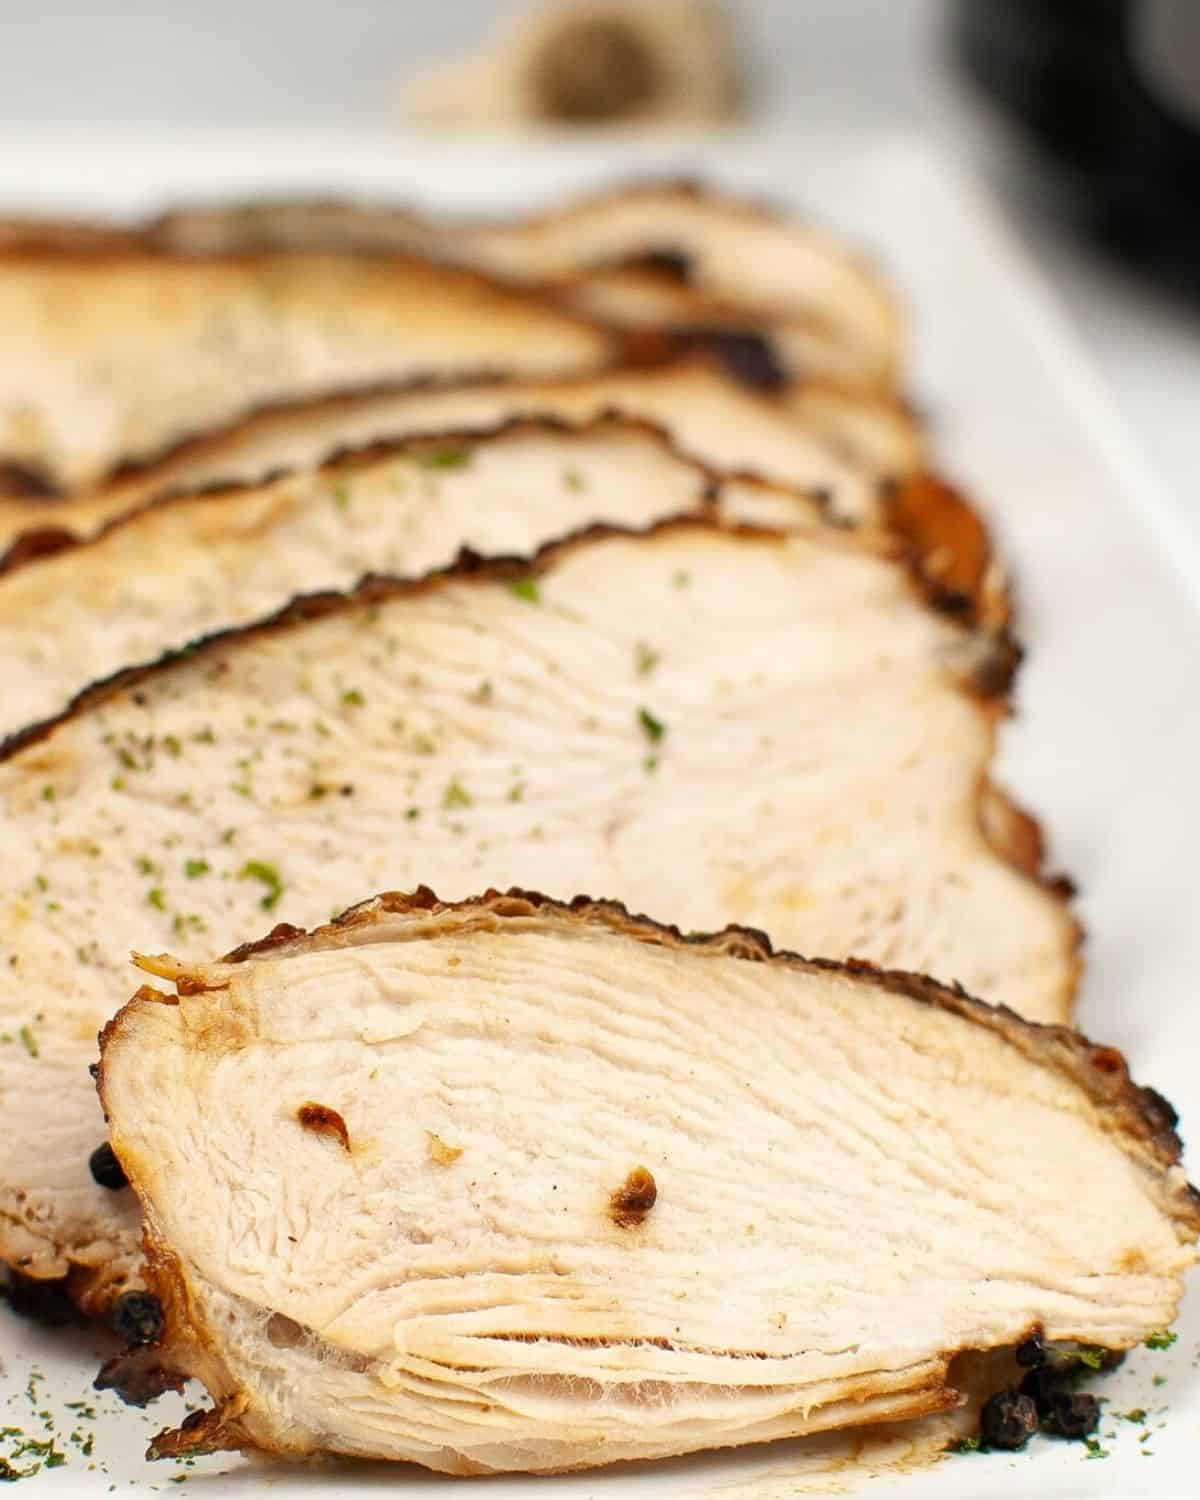 Turkey breast that has been cooked and sliced with a sprinkle of parsley on a white plate.